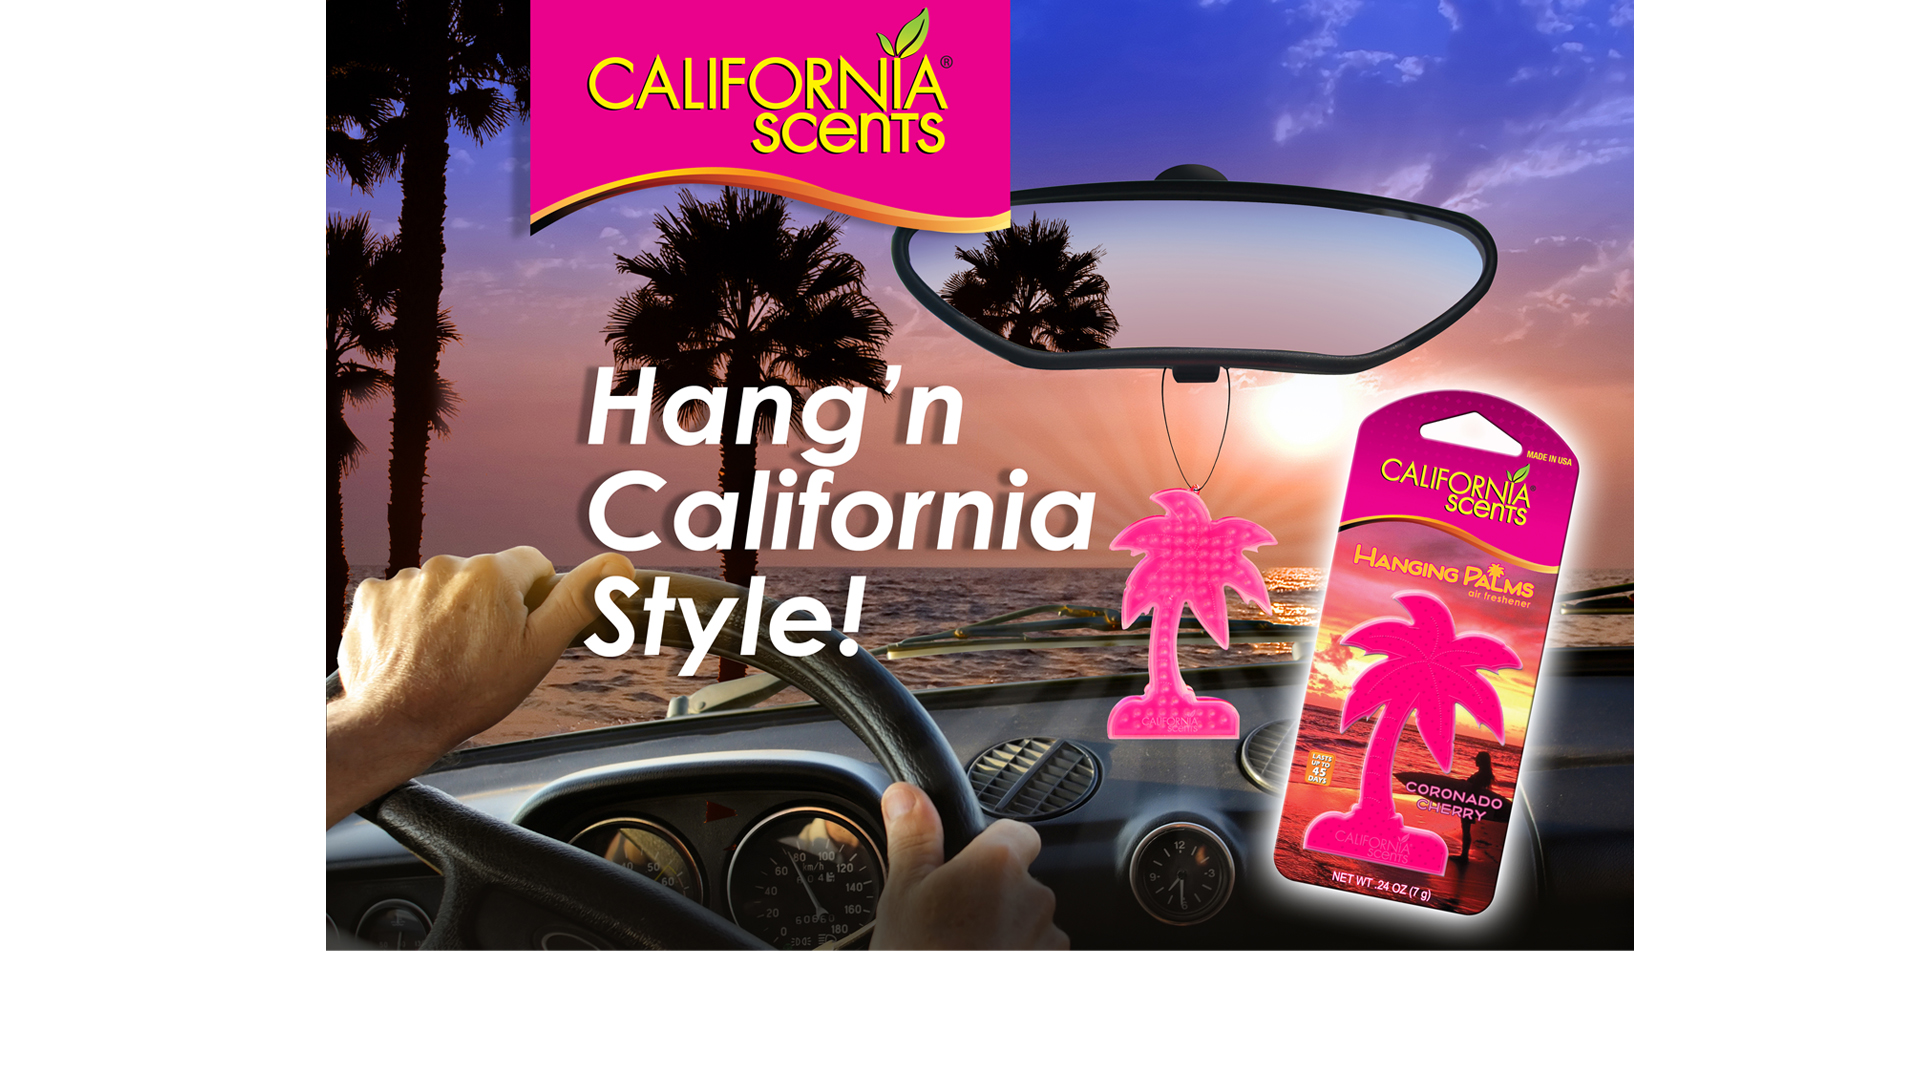 California Scents Air Freshener Social Media Content image.